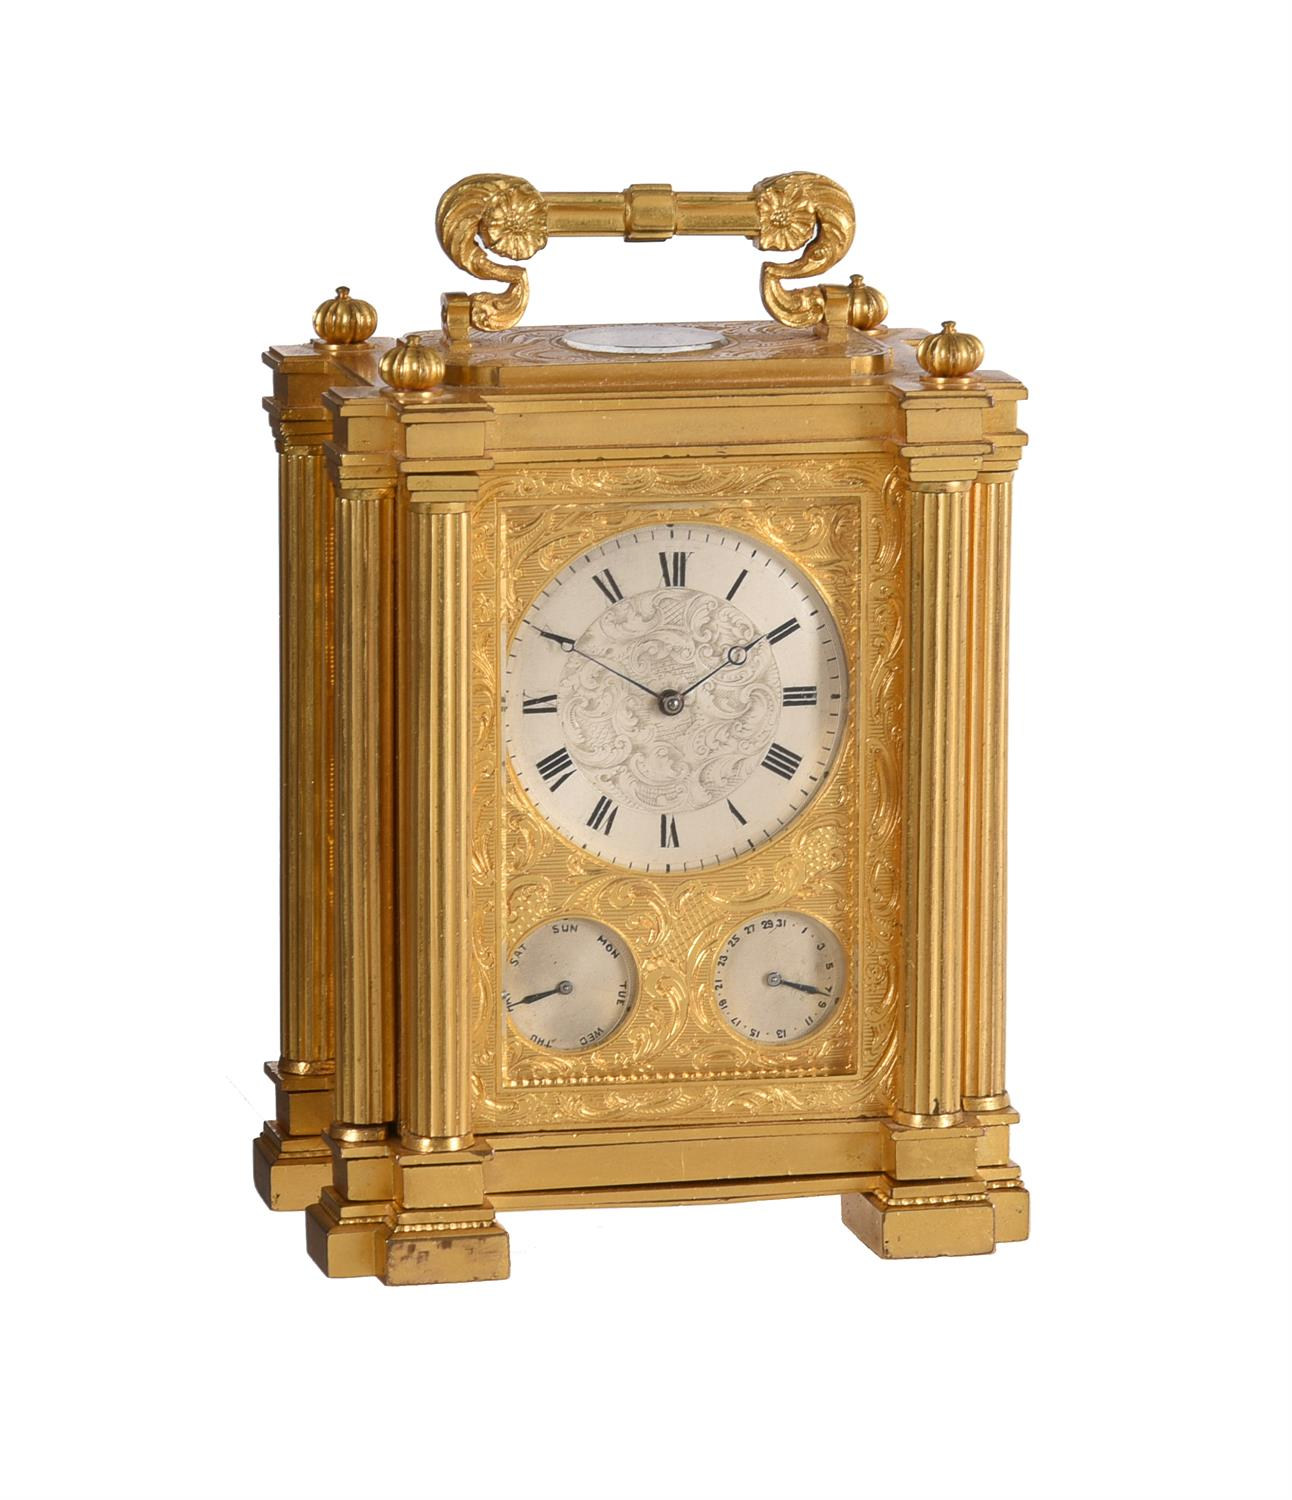 A fine small early Victorian engraved gilt brass small calendar carriage timepiece with twin thermom